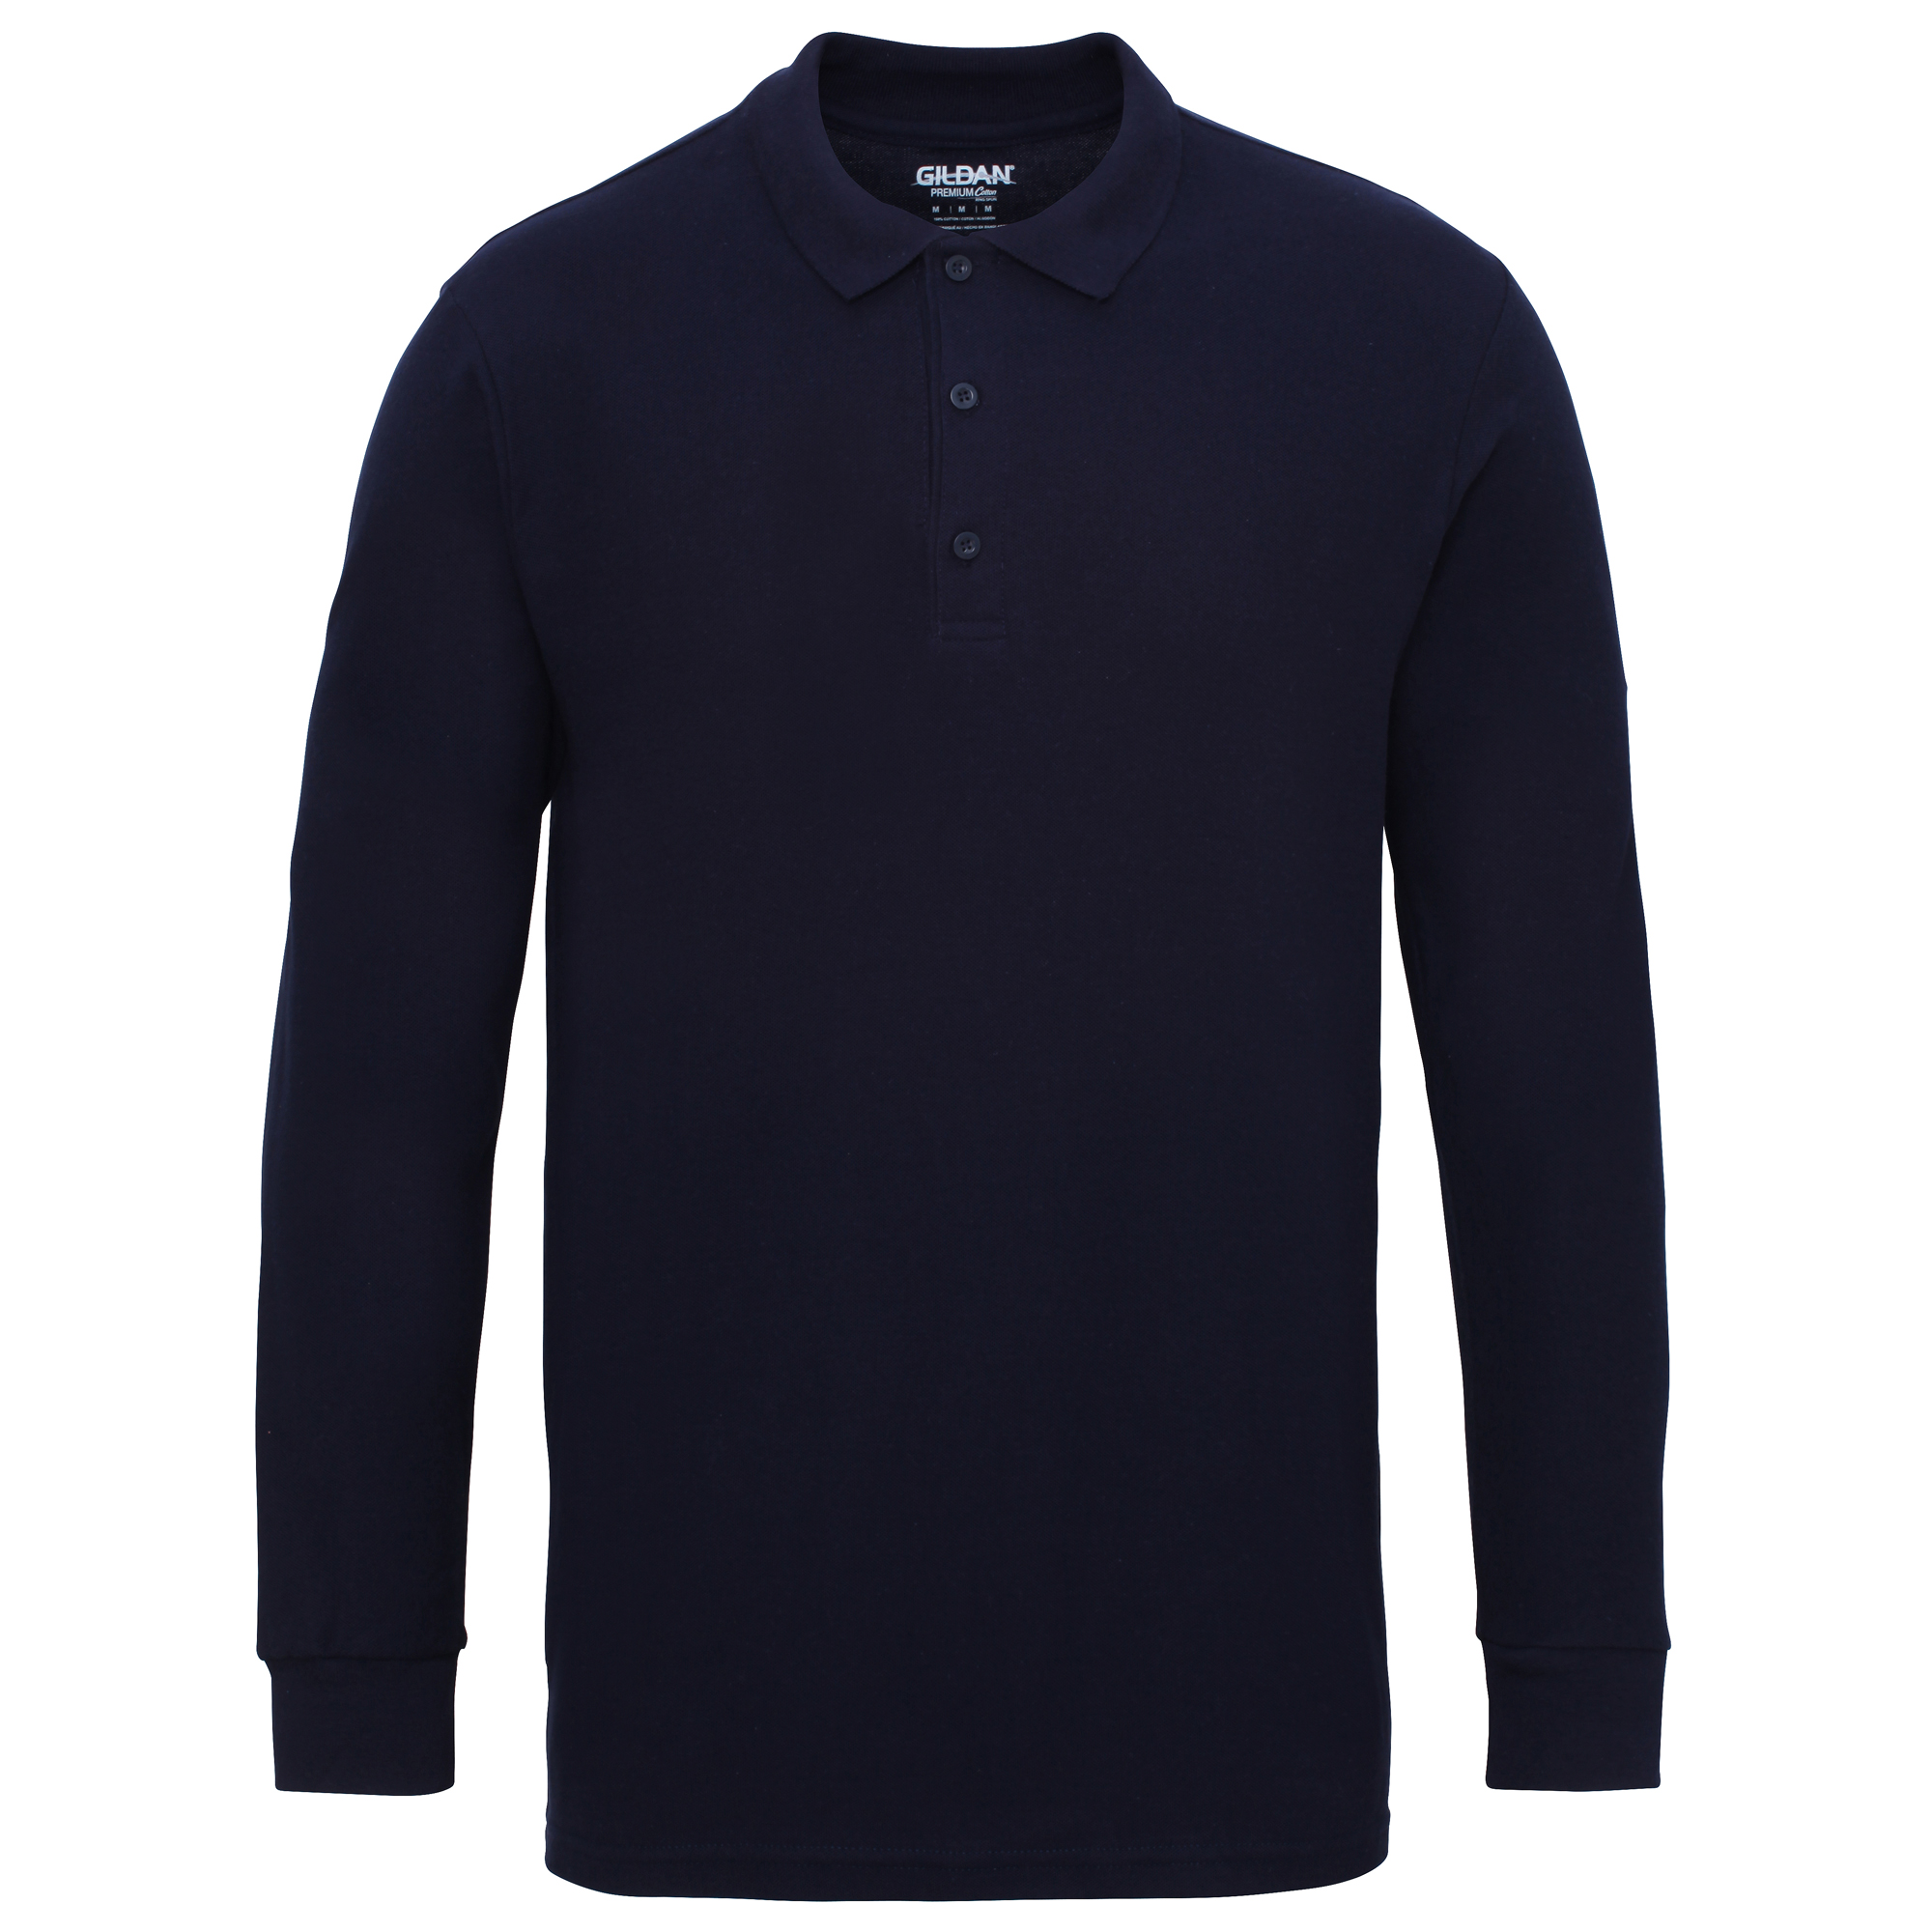 gildan mens long sleeve double pique cotton polo shirt ebay